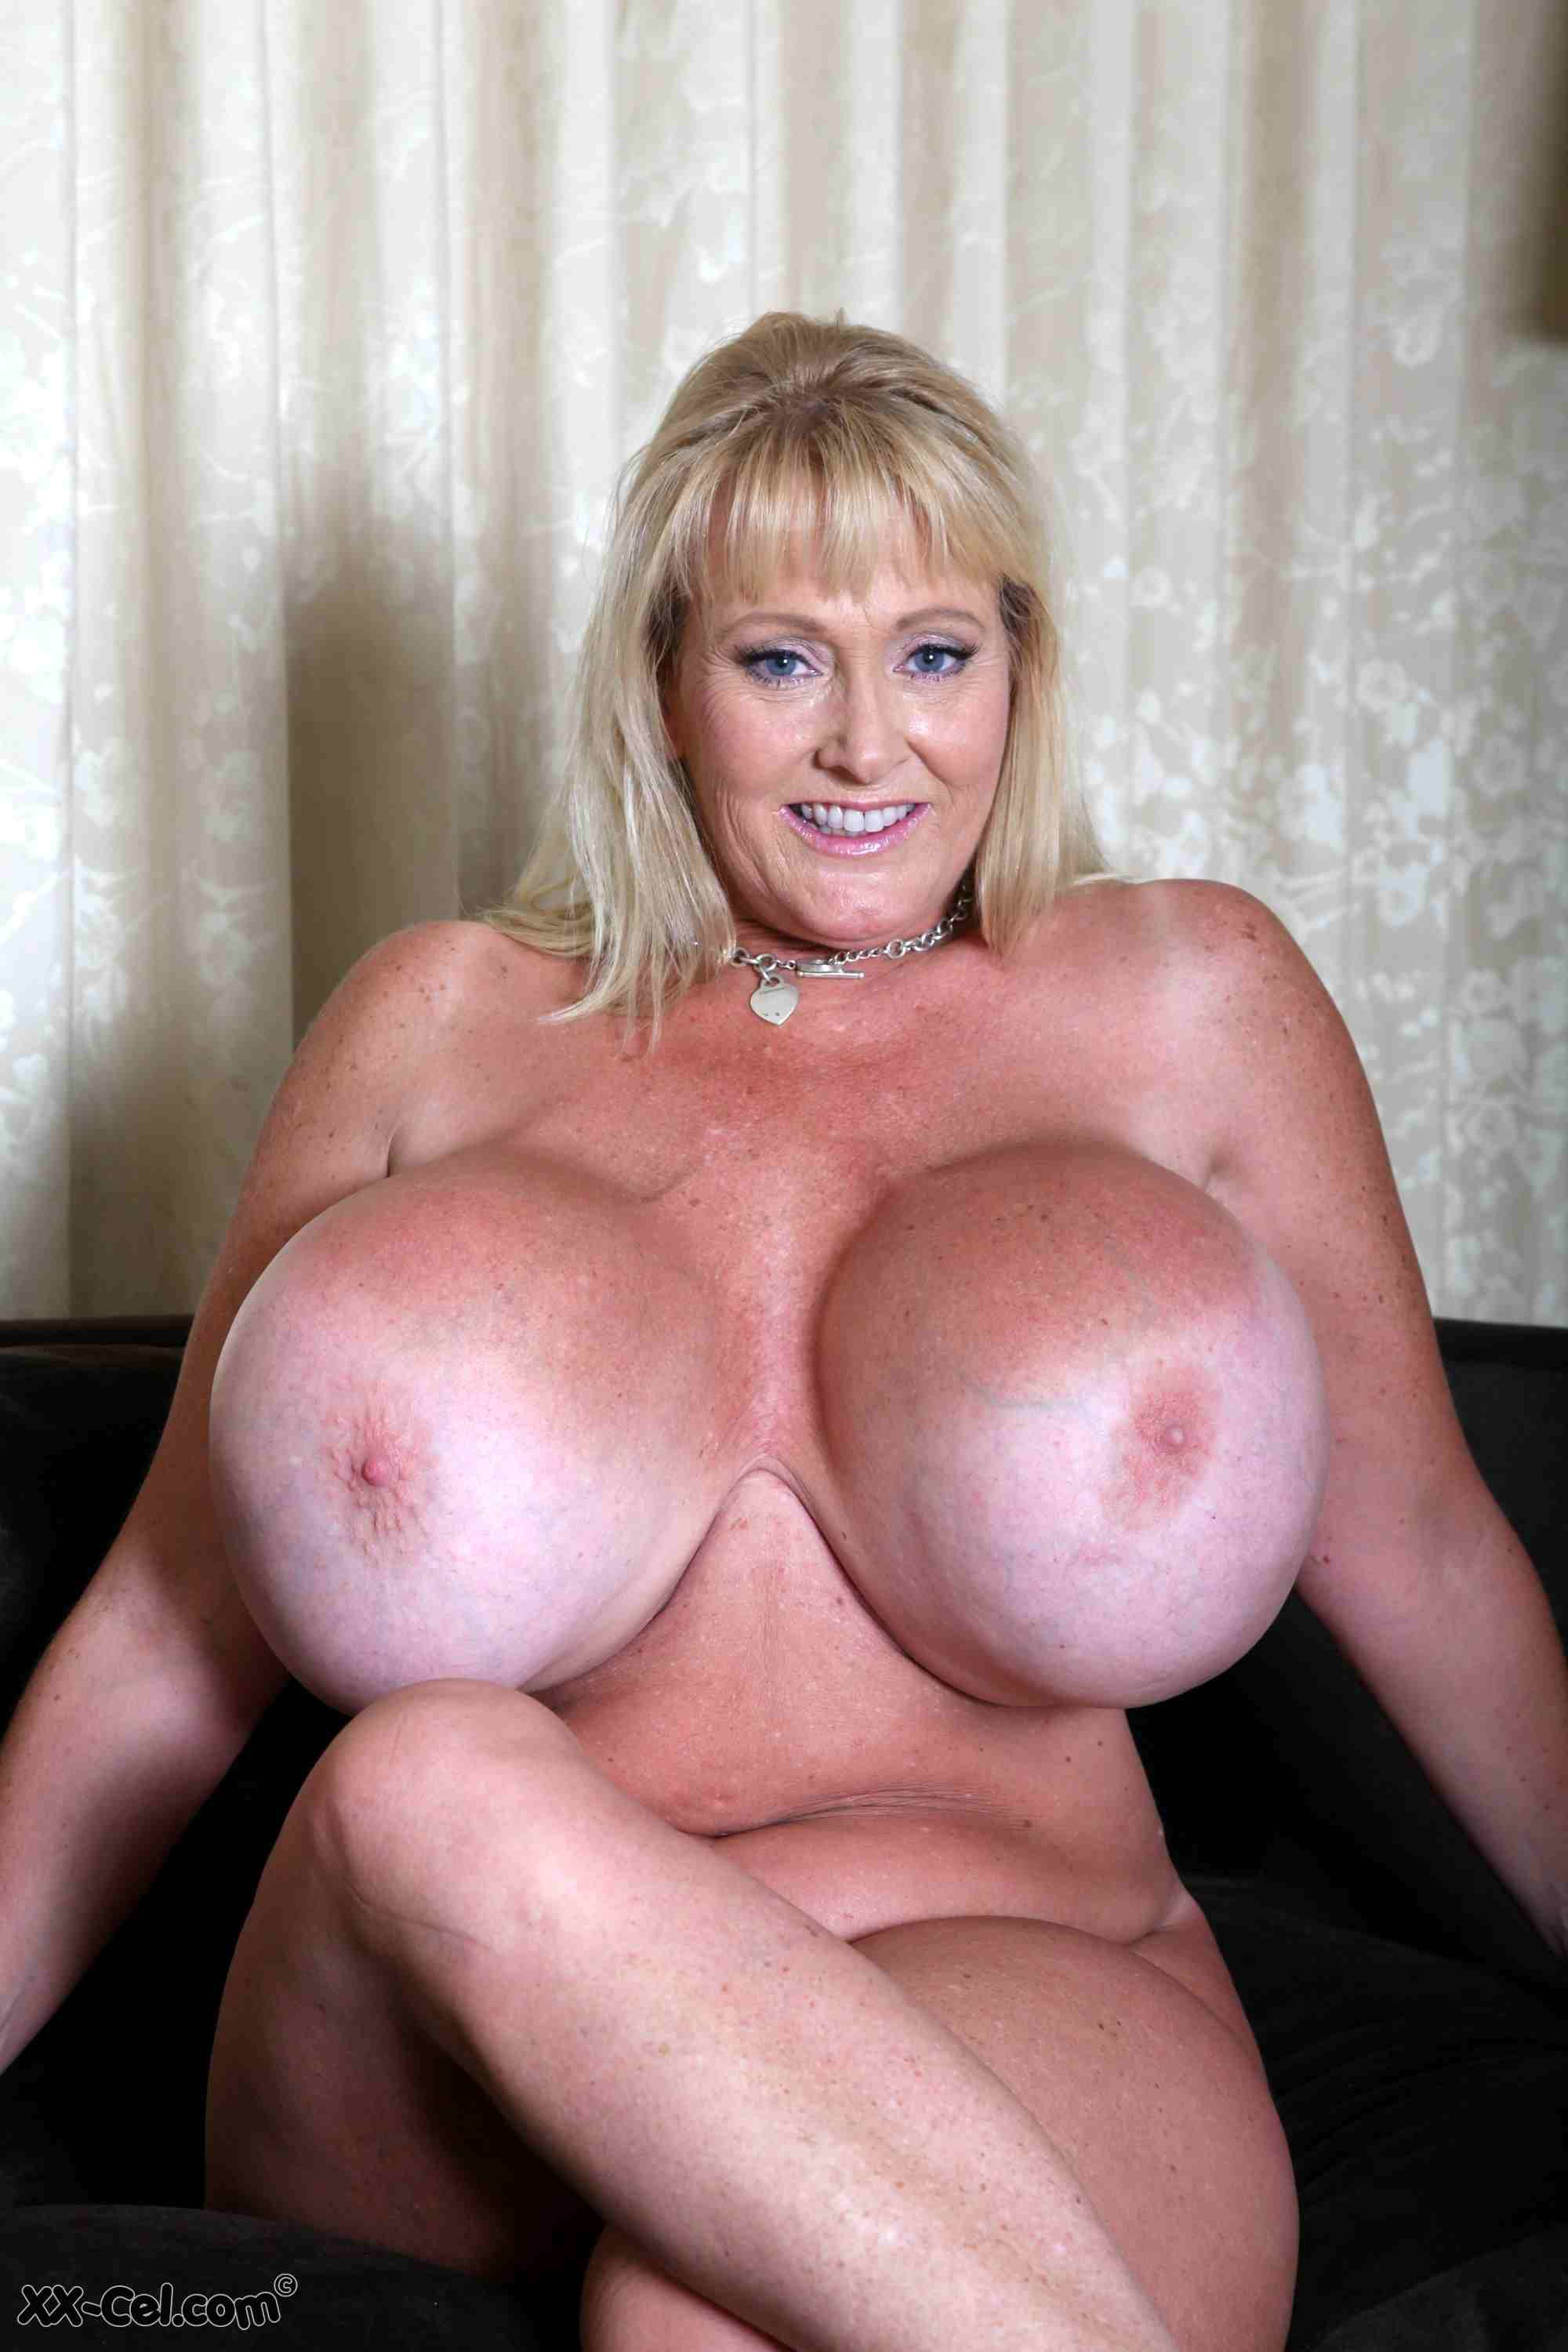 Big Boobs Model Kayla Kleevage Spreads Her Pussy